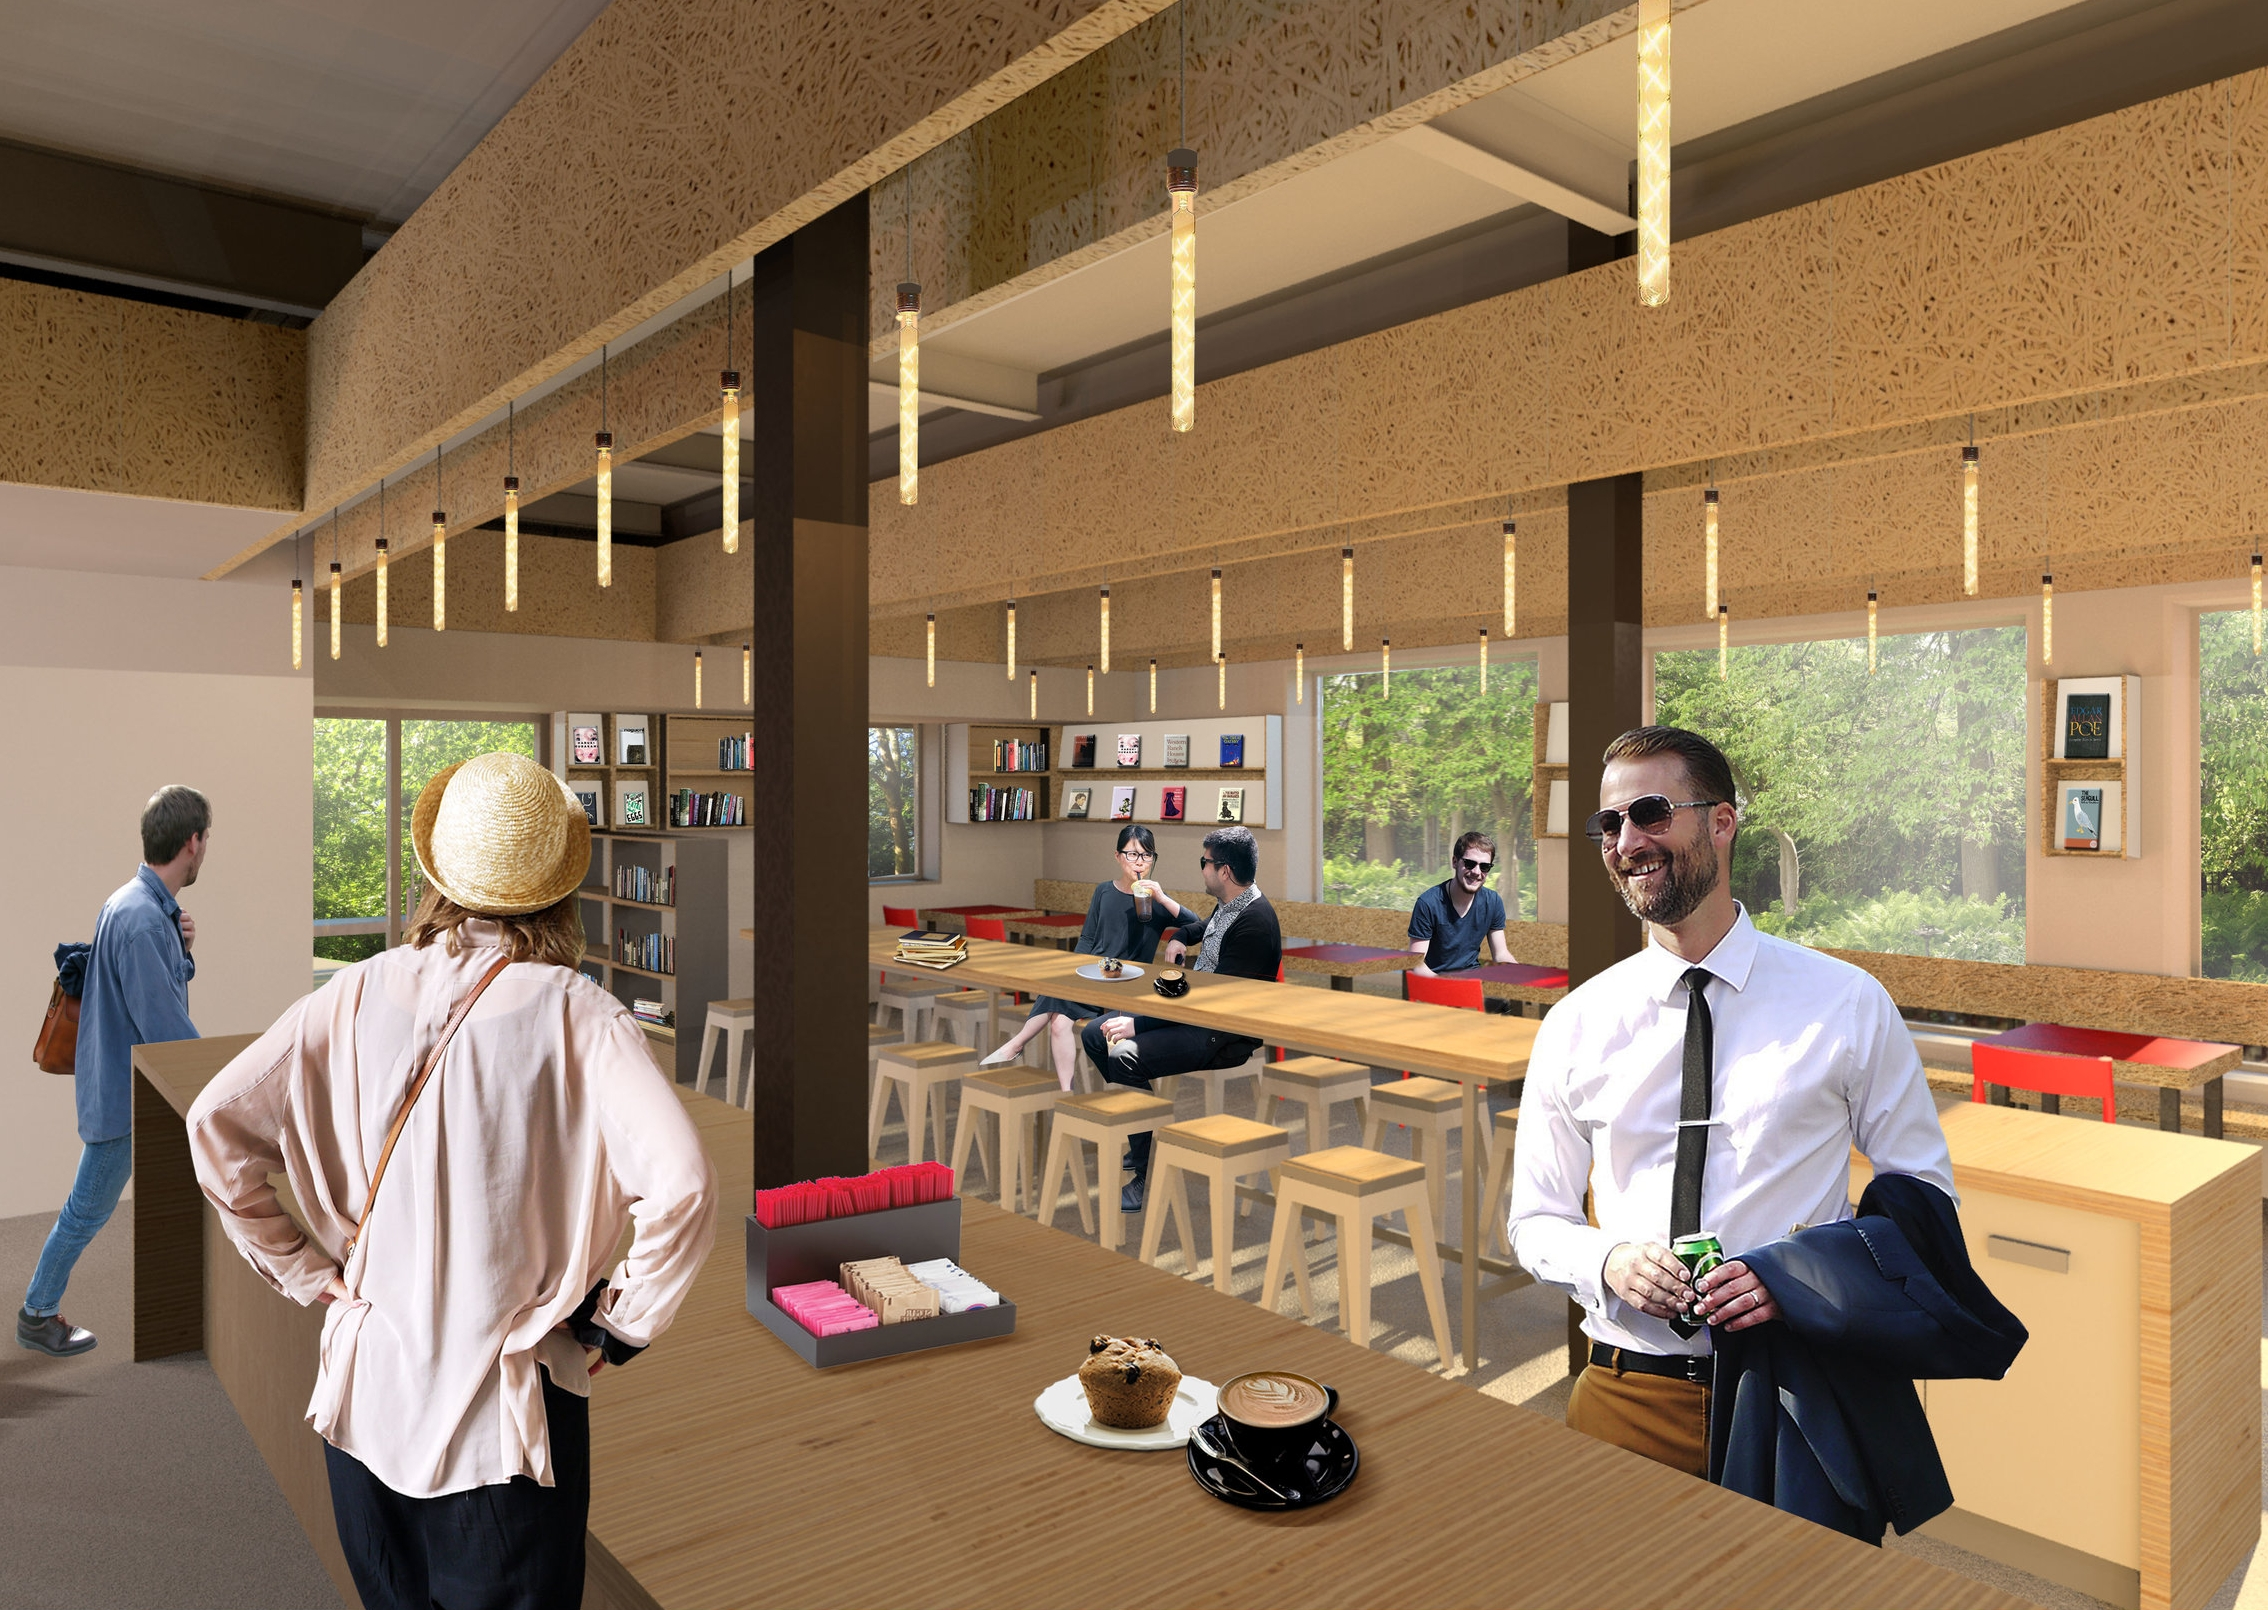 08-2_CAFE VIEW 2.jpg